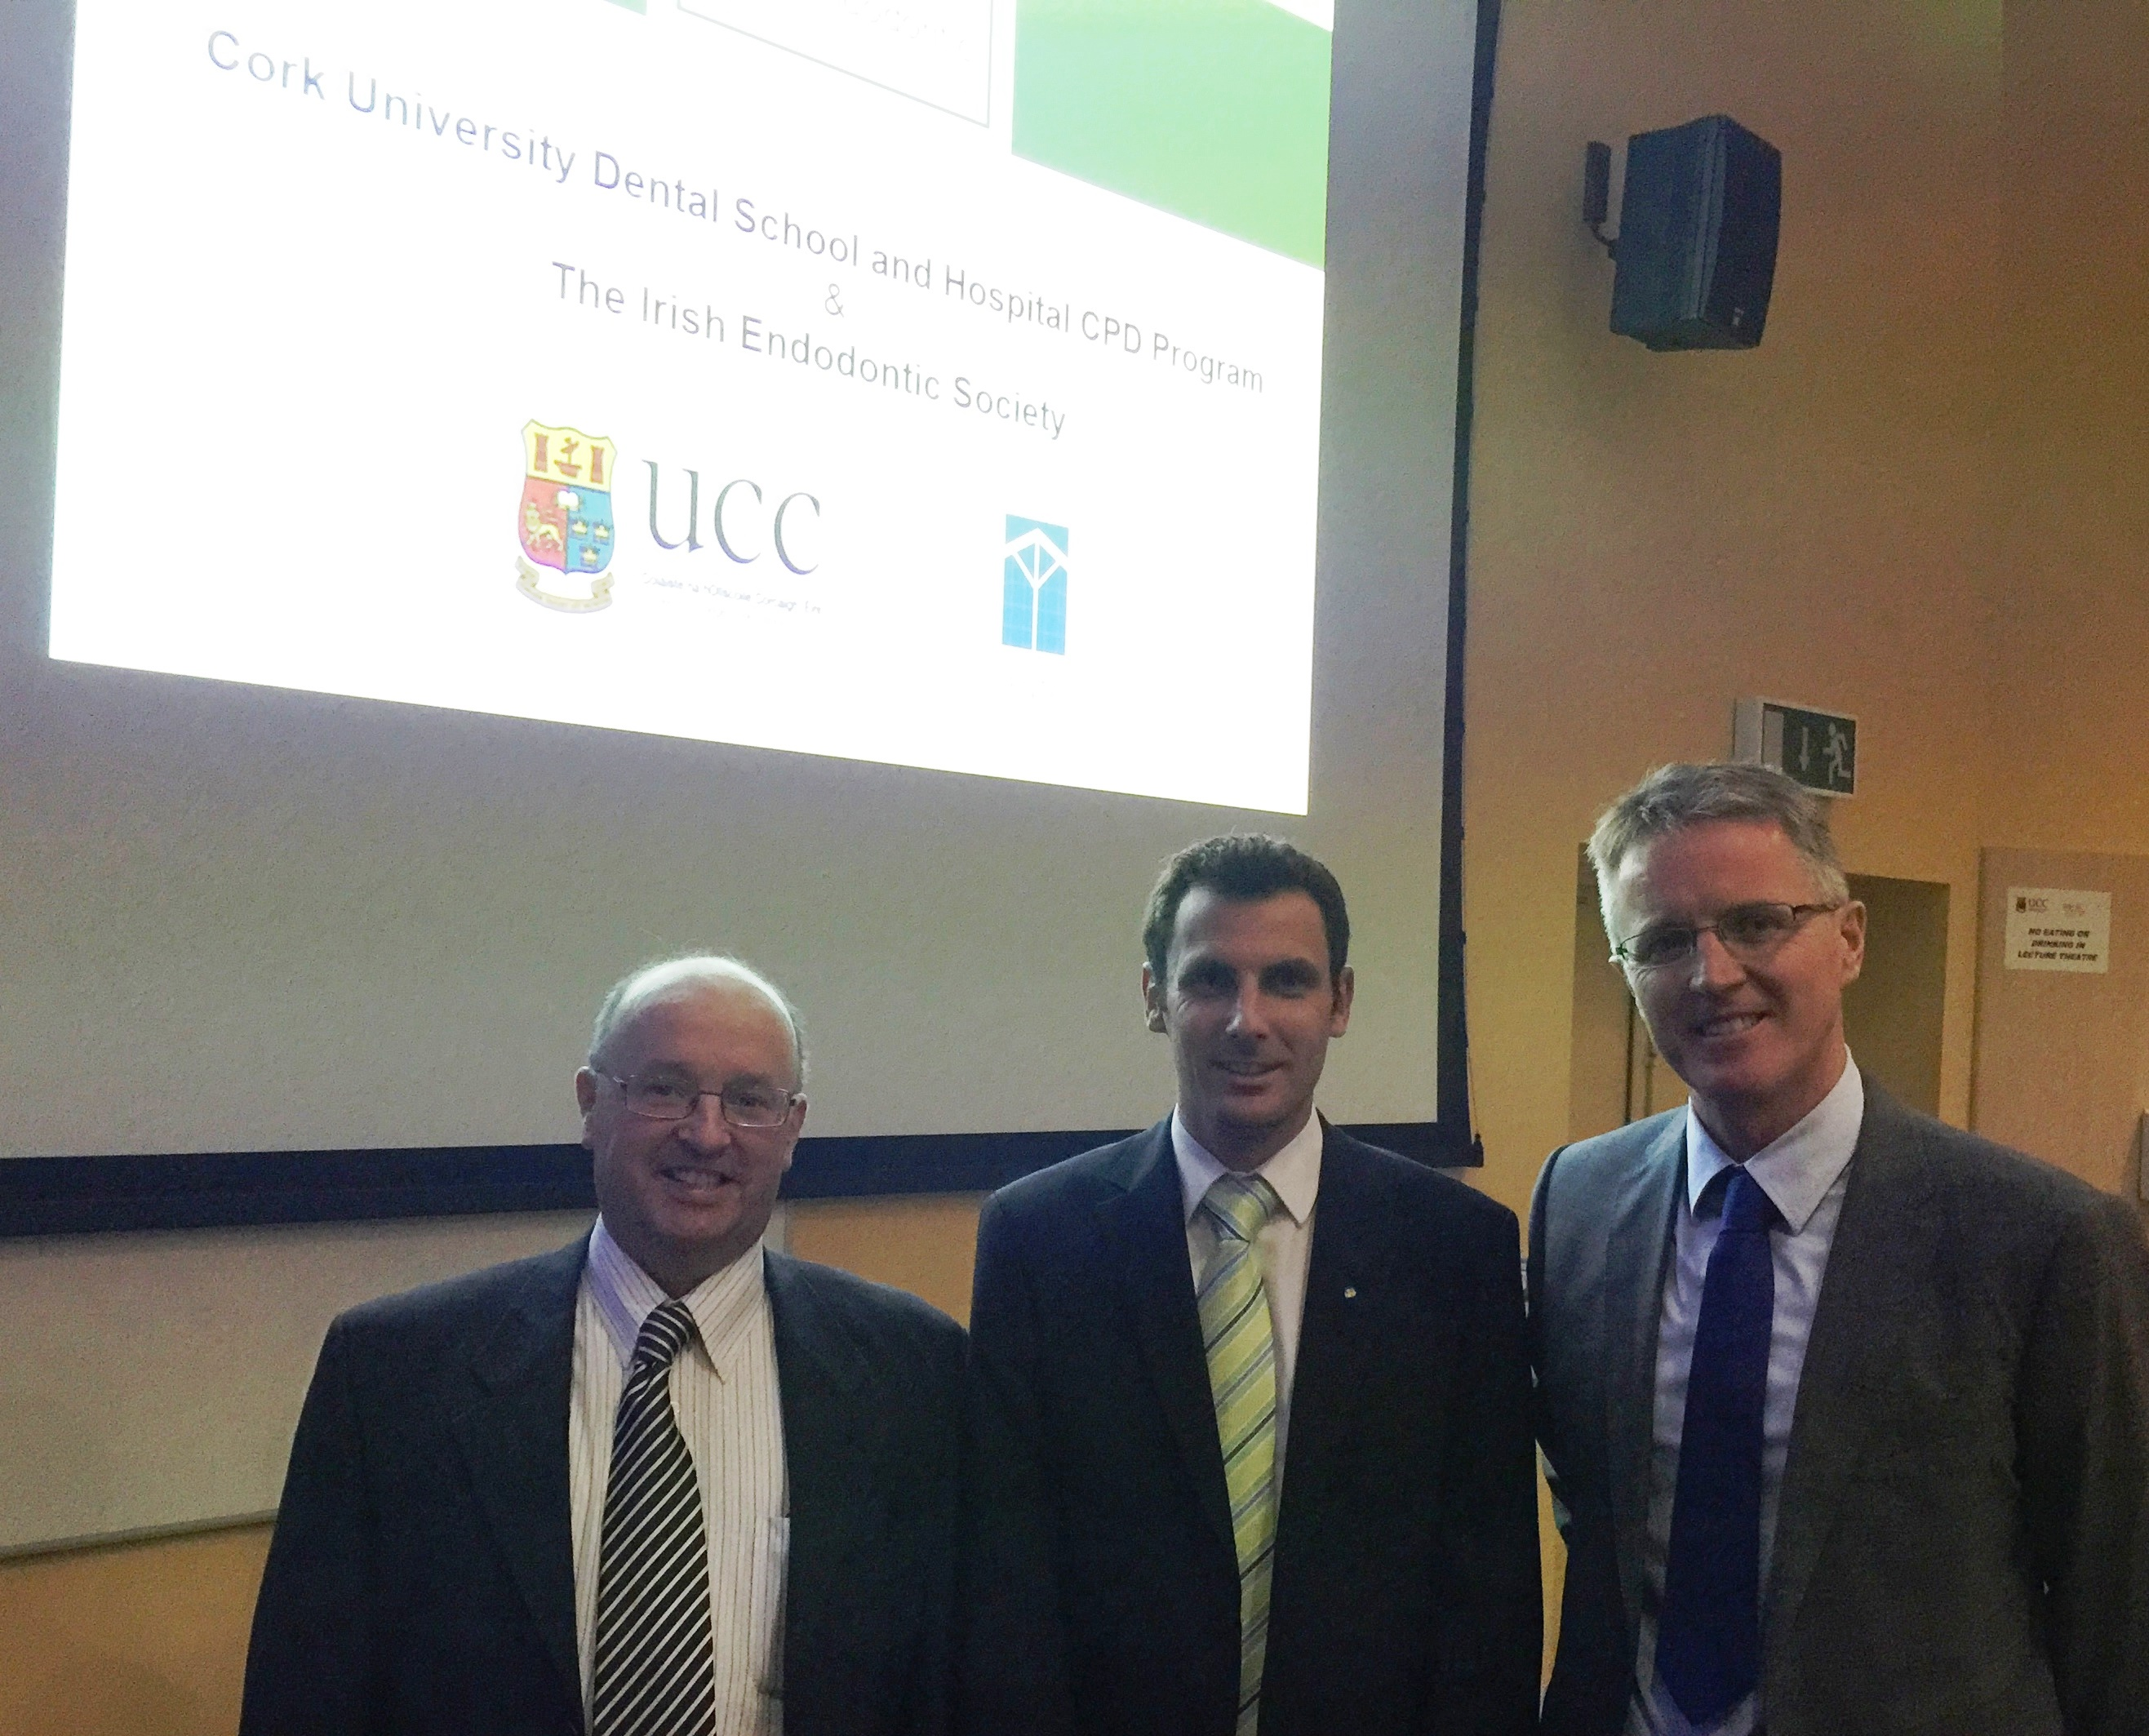 Irish Endodontic Society Lecture